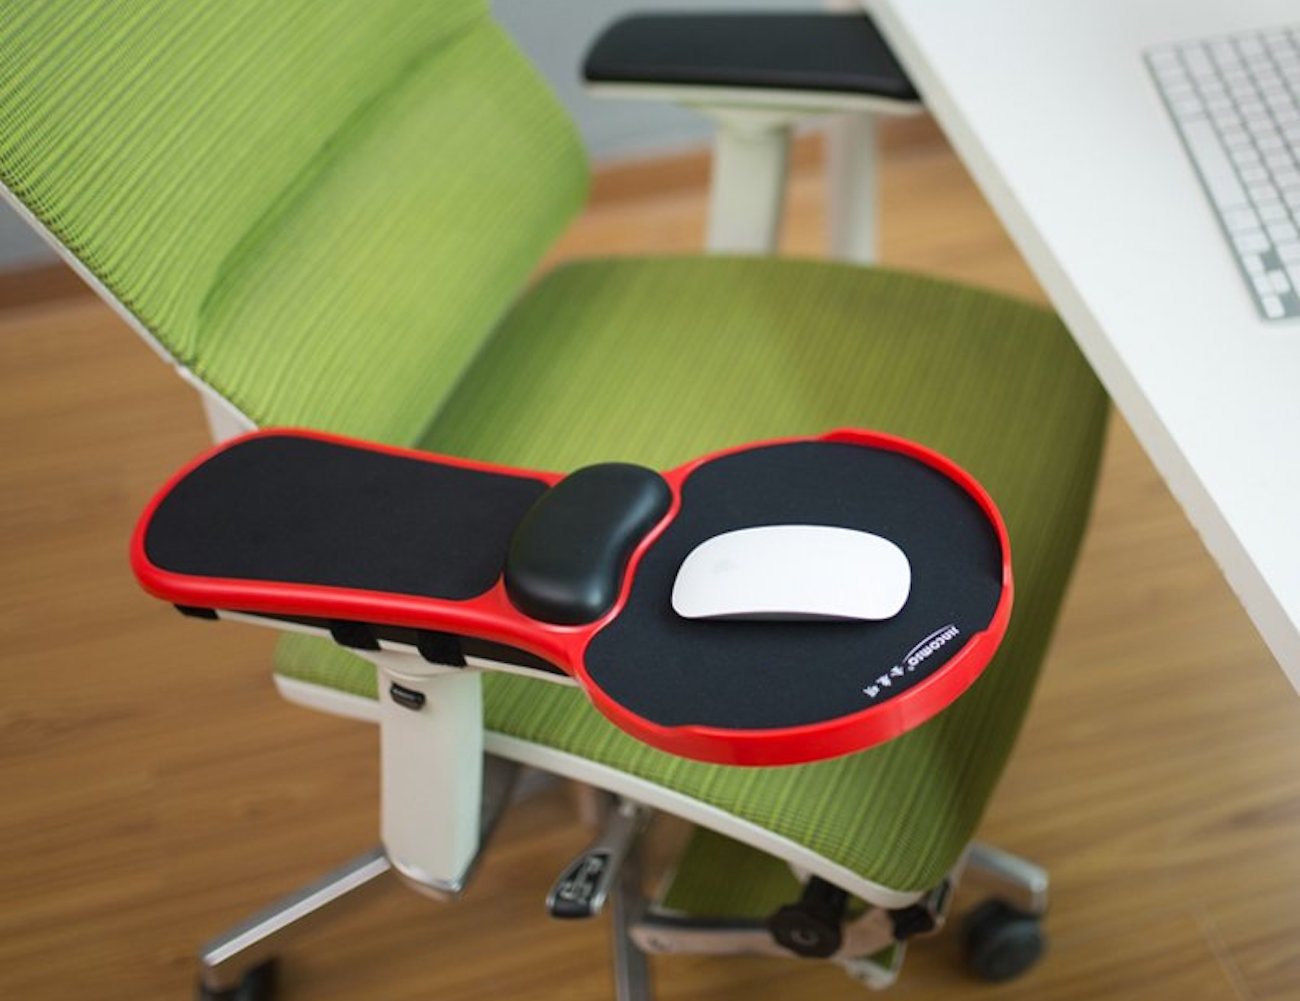 Mouse Pad Arm Rest By Jincomso Smart Shopping Jamaica